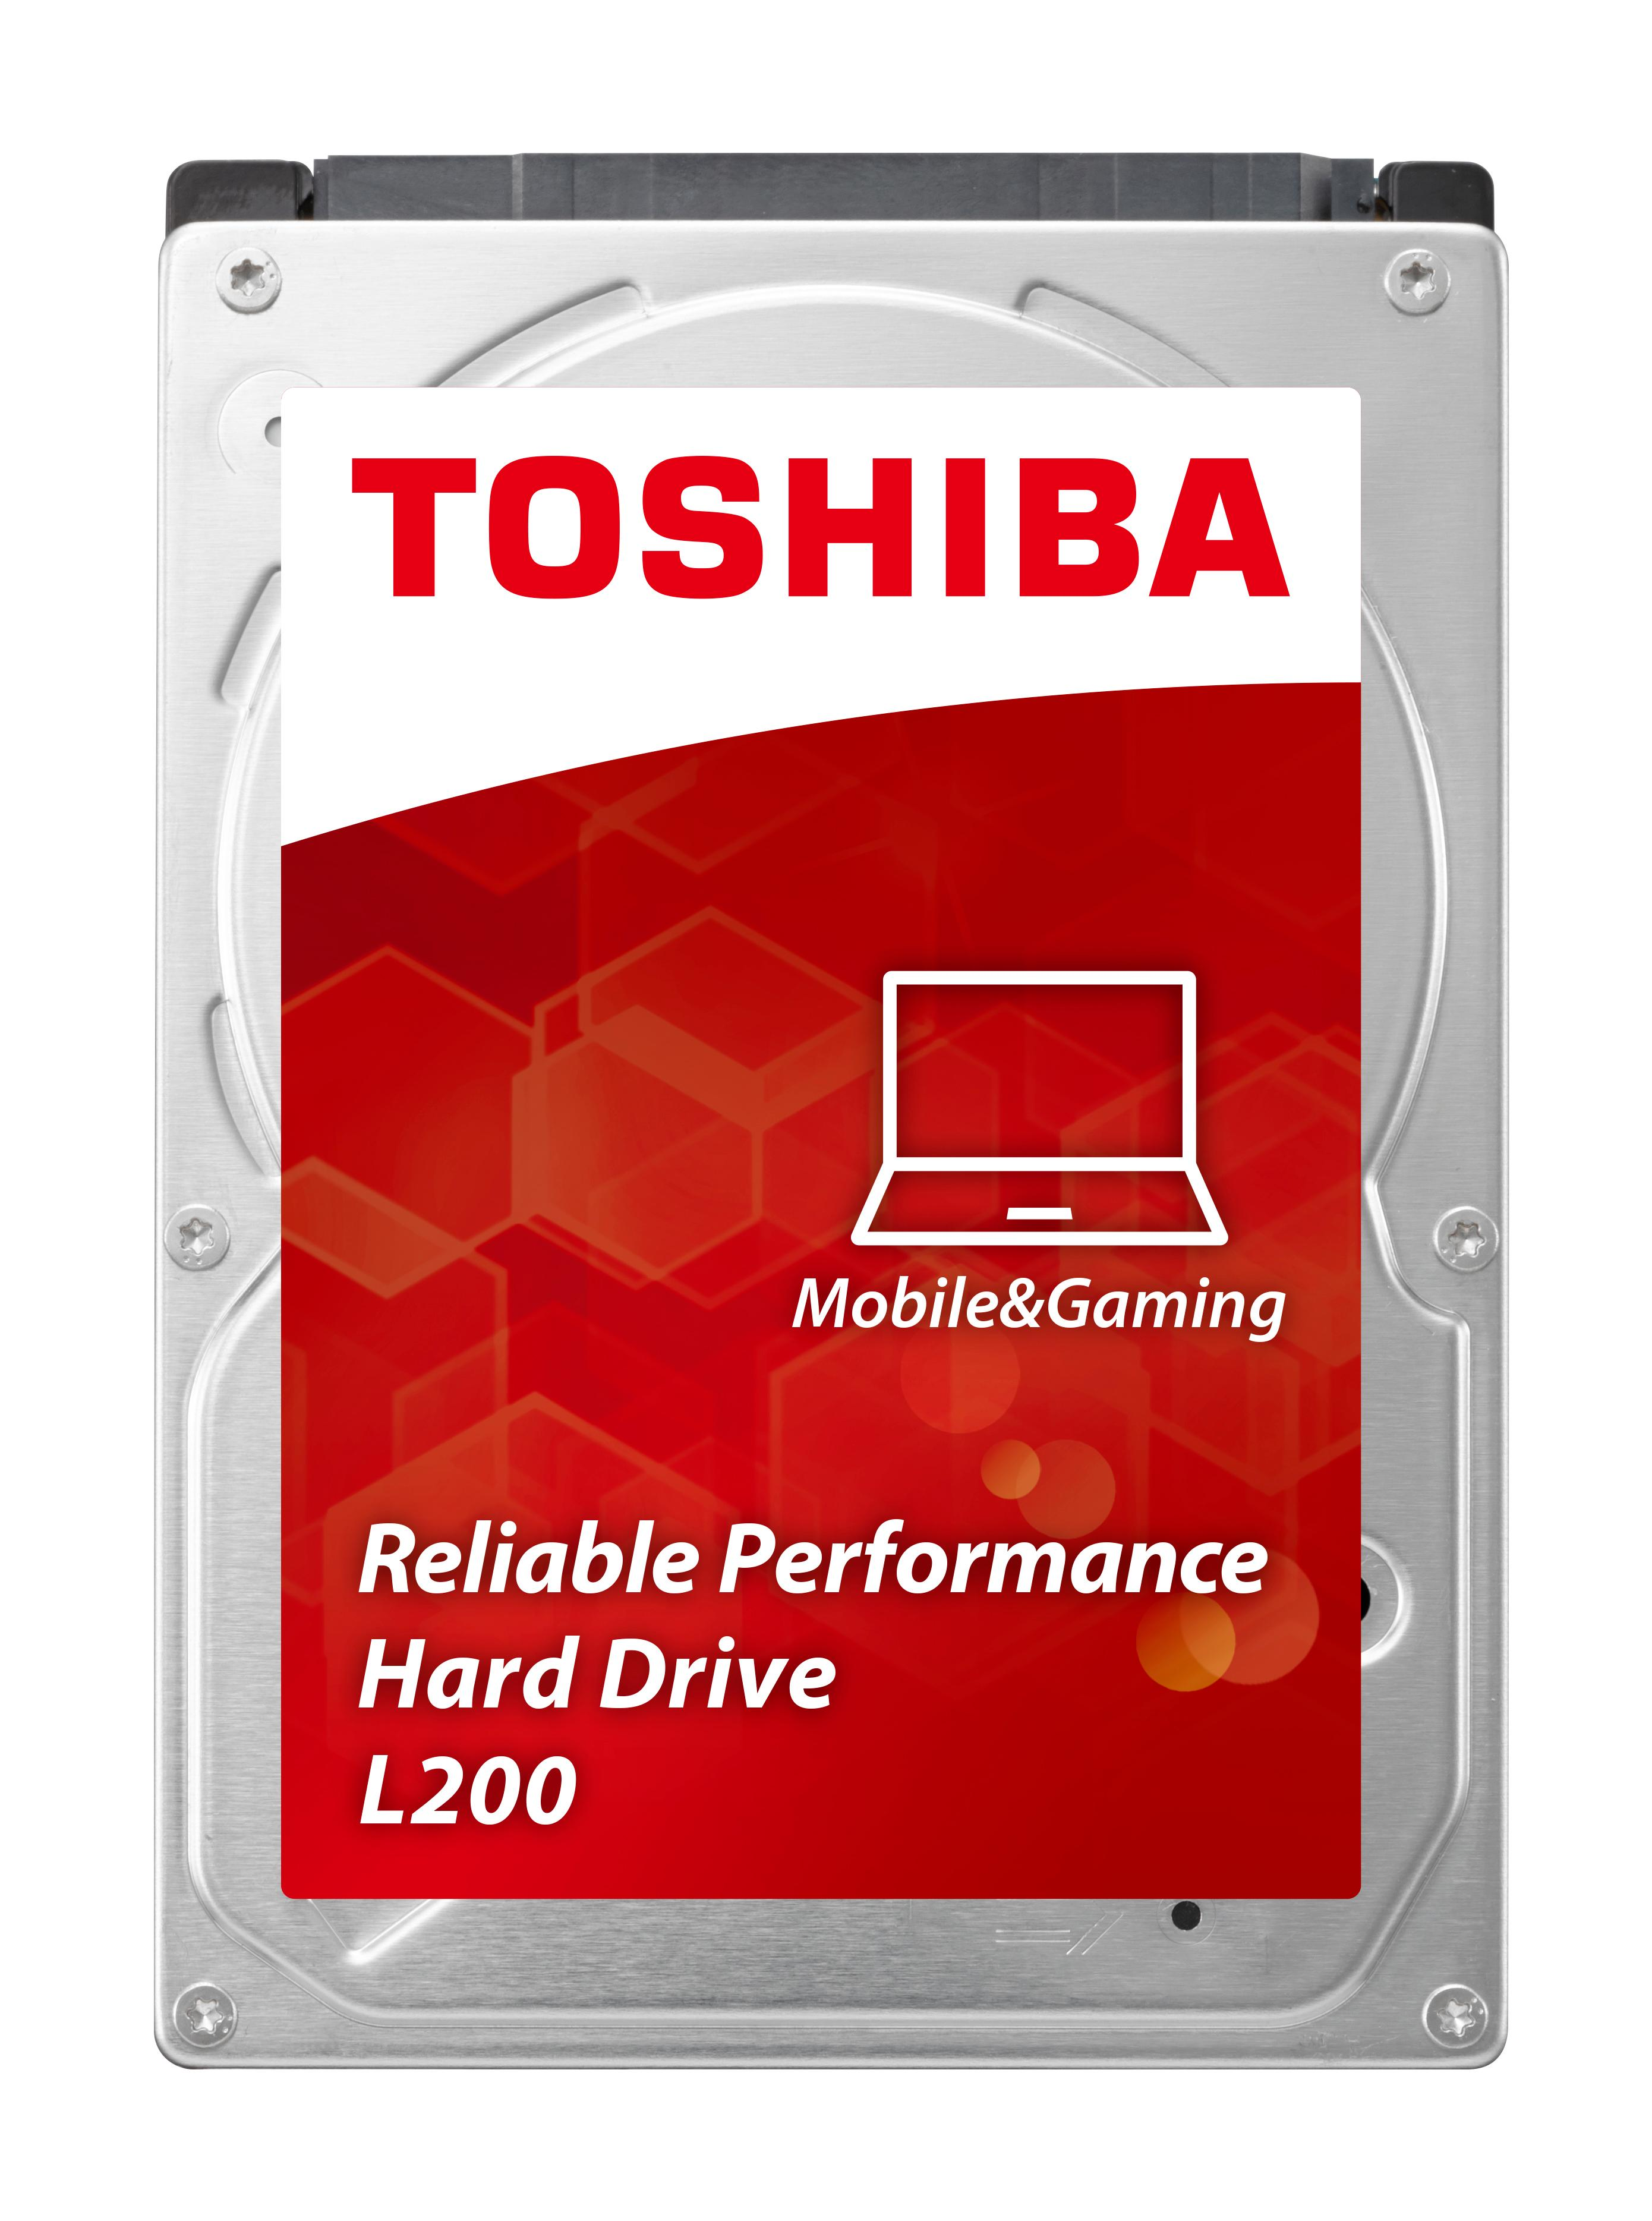 Toshiba L200 1tb Mobile 25 Inch Sata 5400rpm Internal Hard Drive Seagate Firecuda 2tb Sshd 5 Years Warranty Optimum Hdd For Gaming Product Description